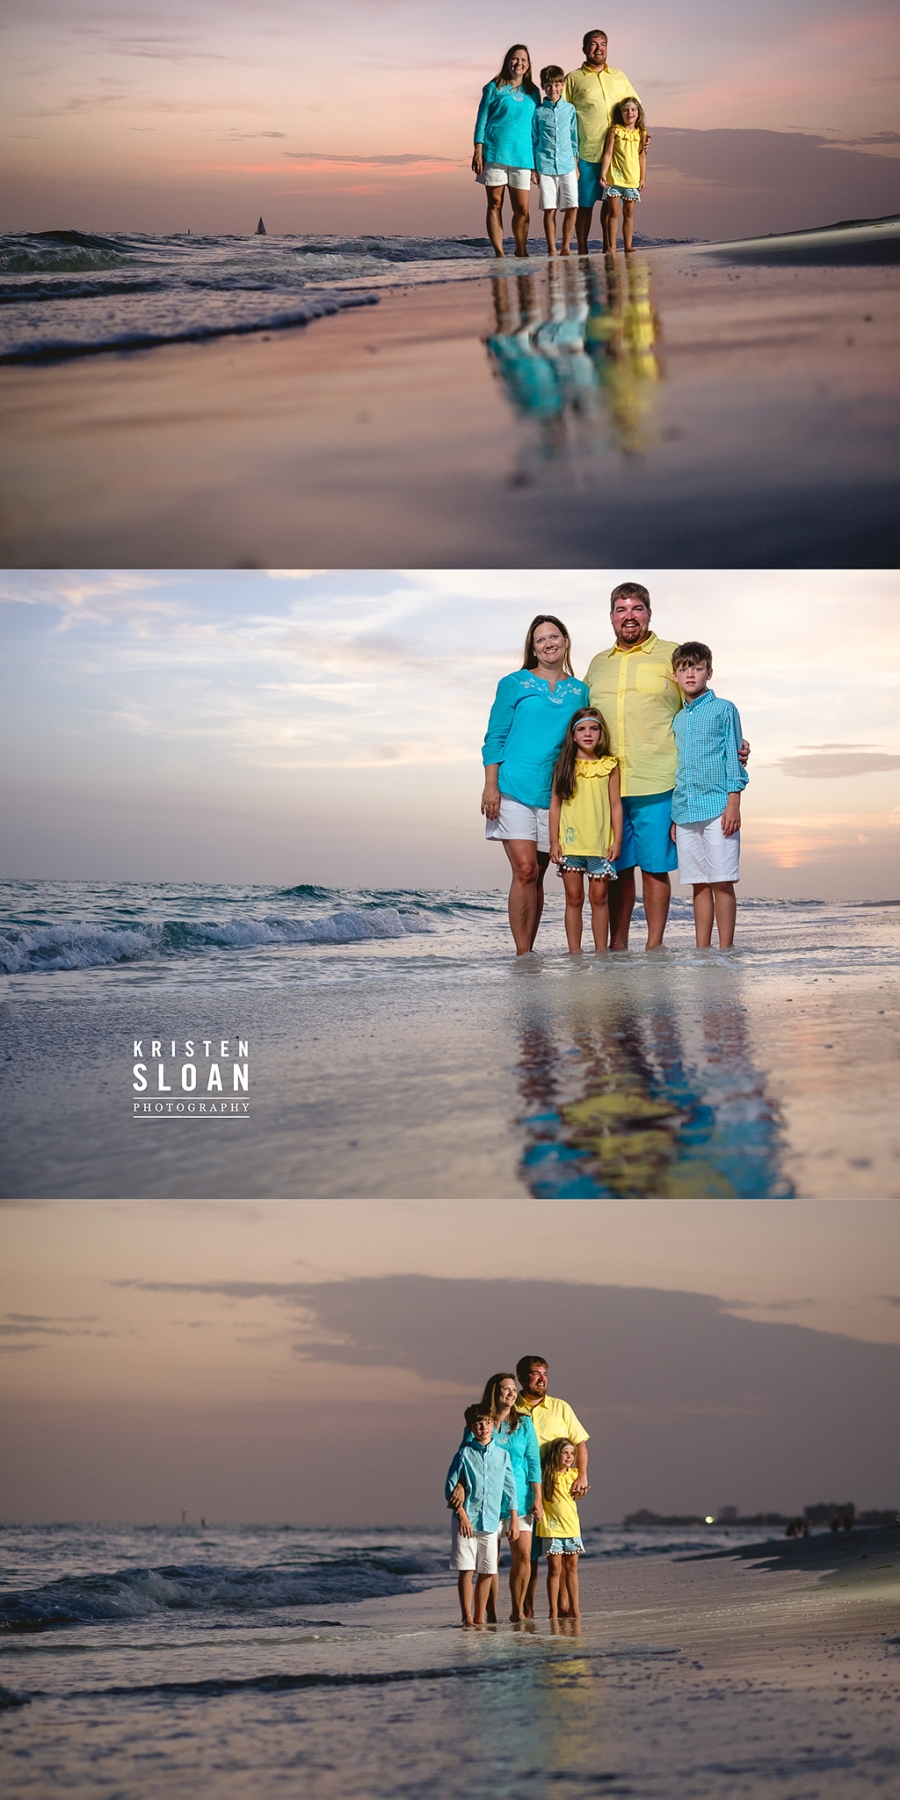 St Pete Beach Treasure Island Photographer Kristen Sloan | Sunset in Treasure Island